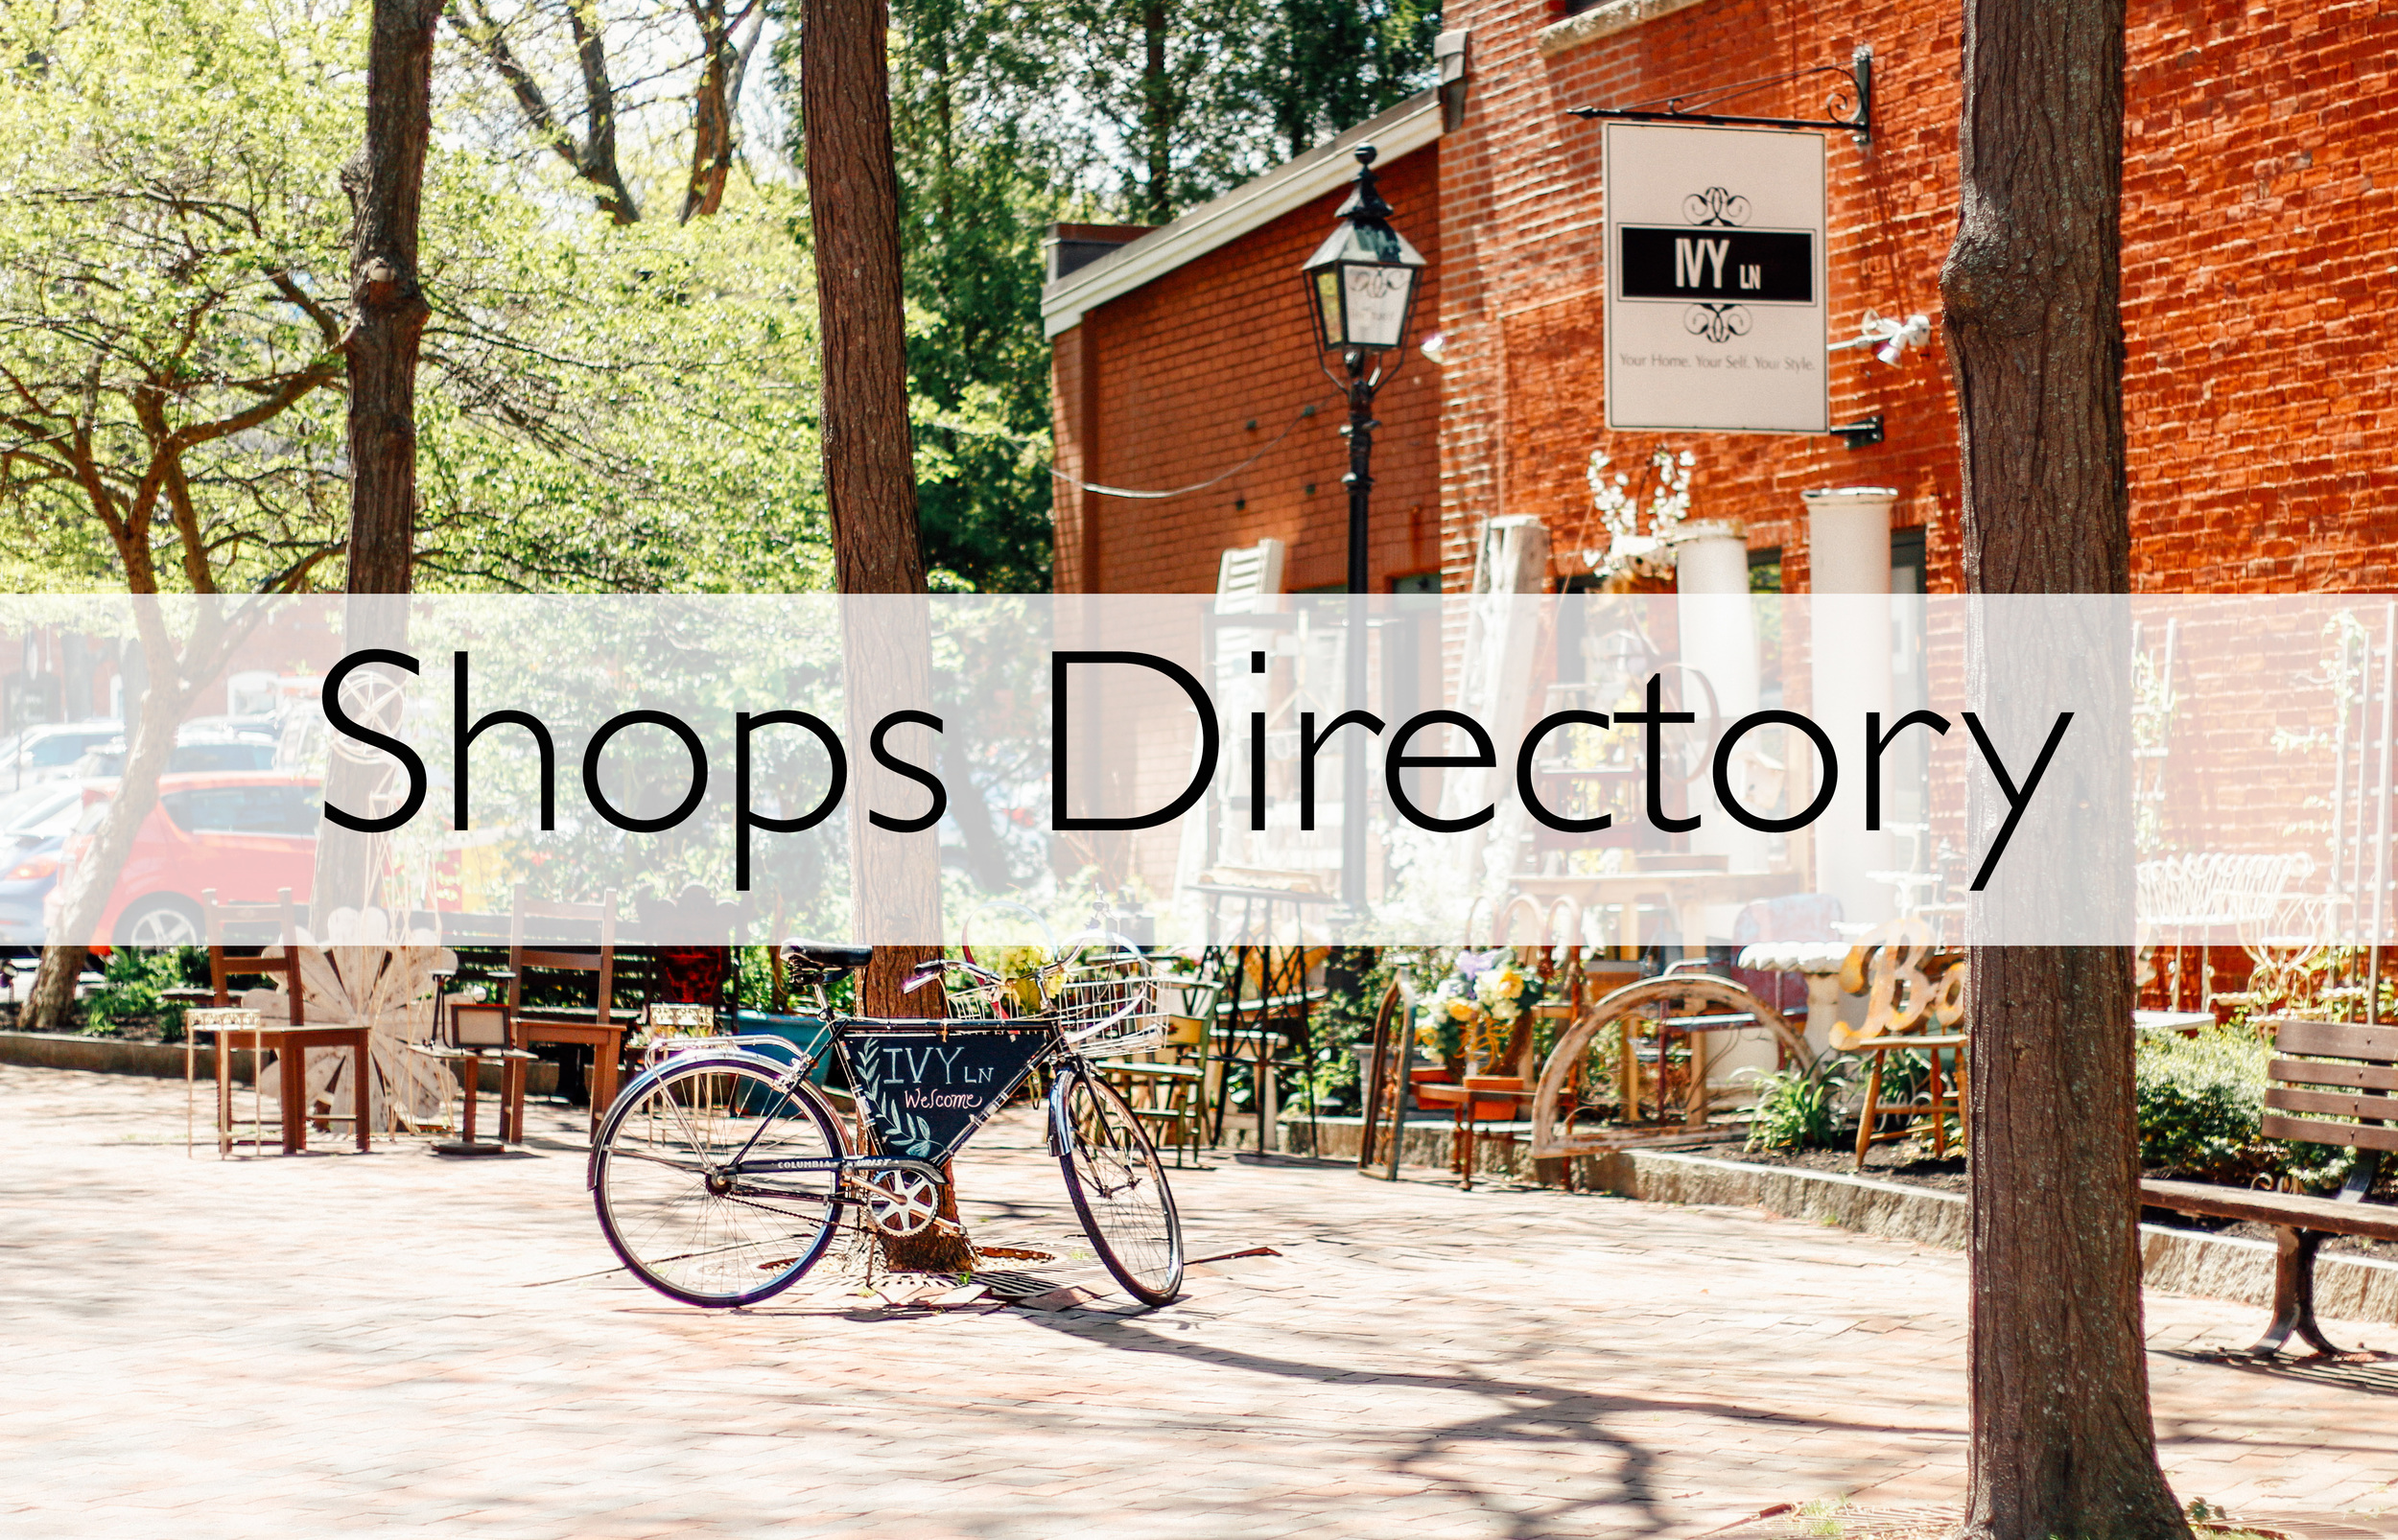 click for our shopping directory